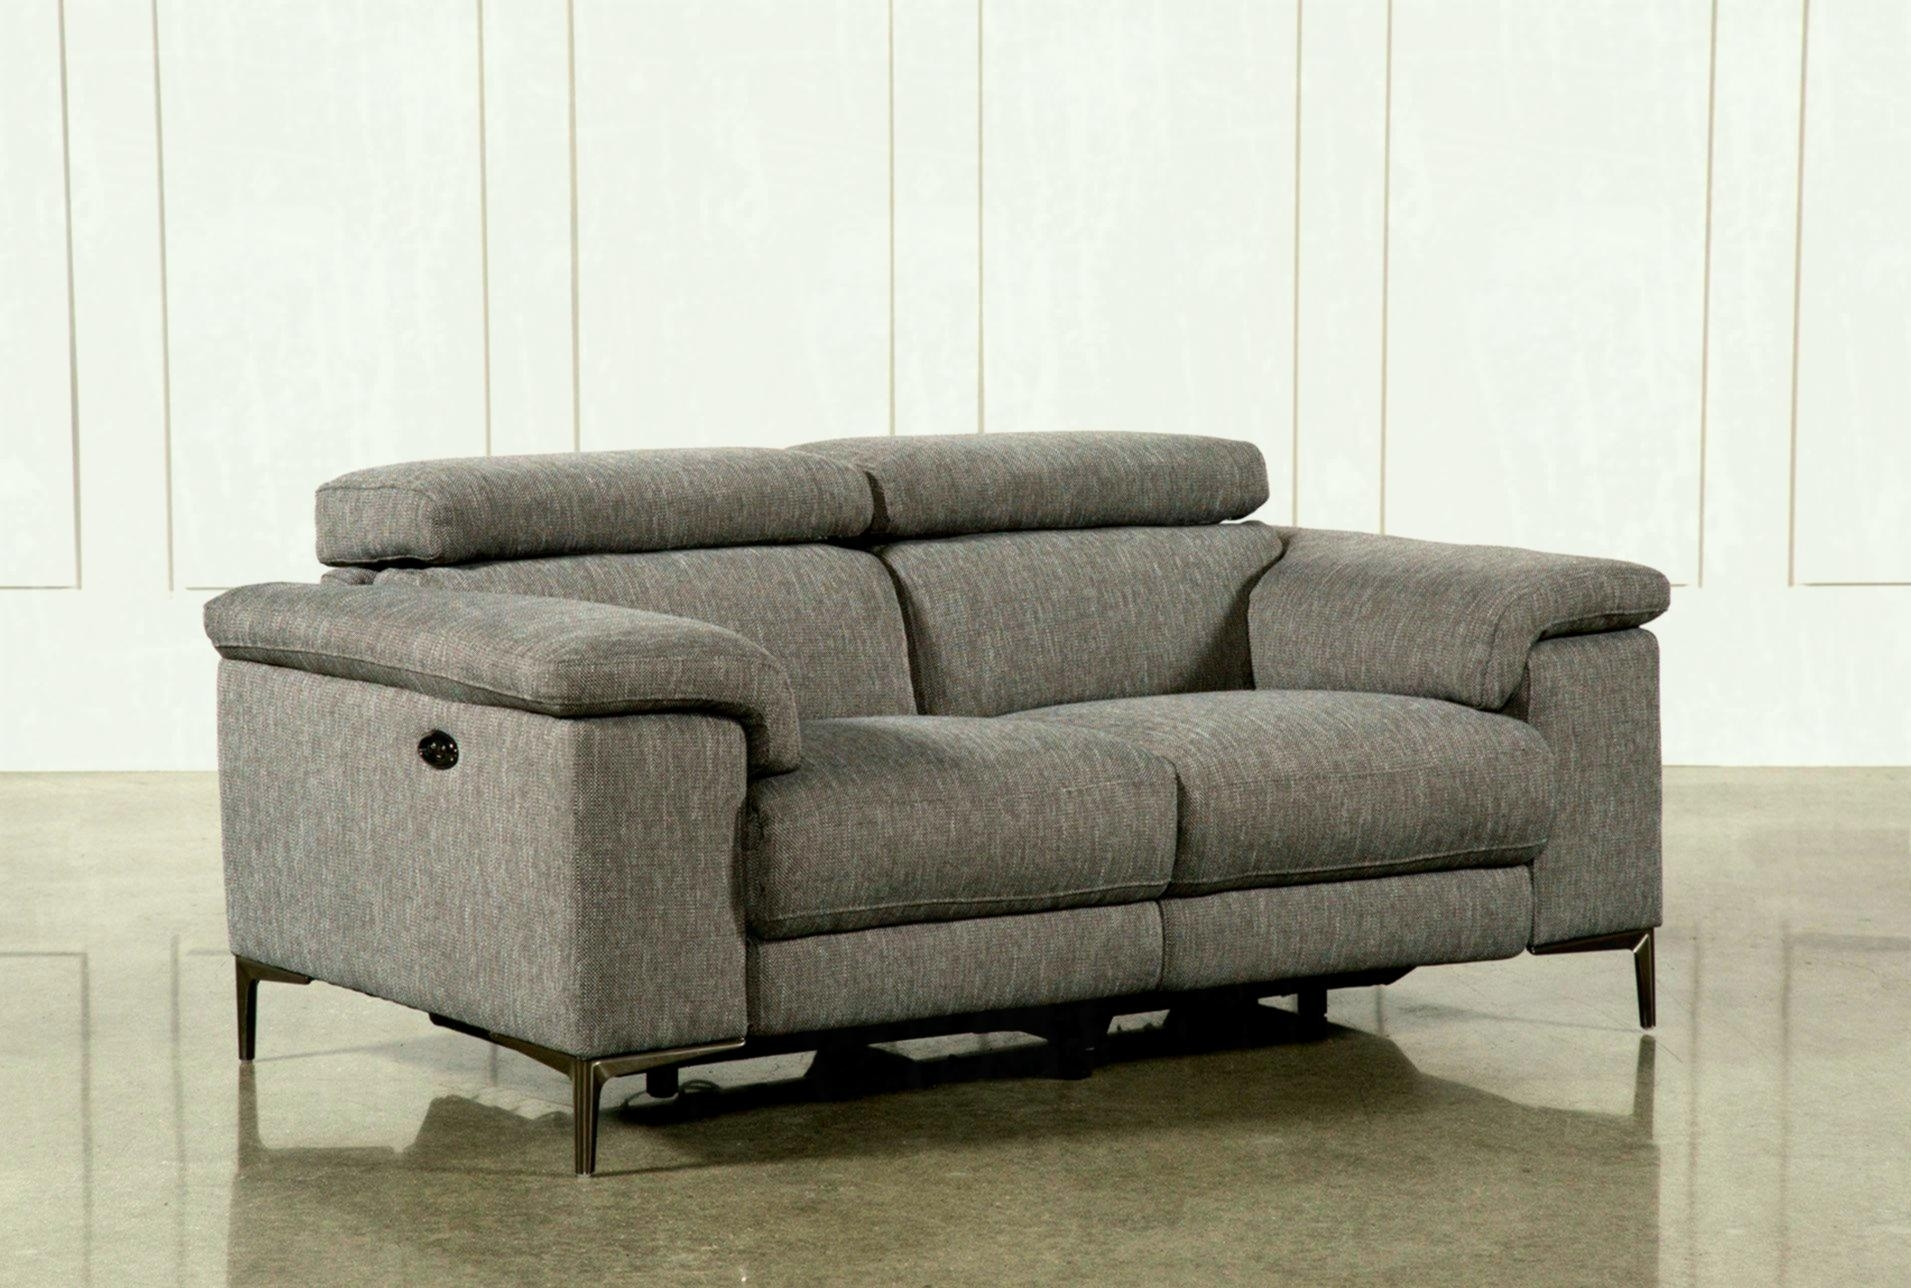 Added To Cart Delano Piece Sectional W Laf Oversized Chaise Living With Regard To Delano 2 Piece Sectionals With Laf Oversized Chaise (Image 2 of 25)